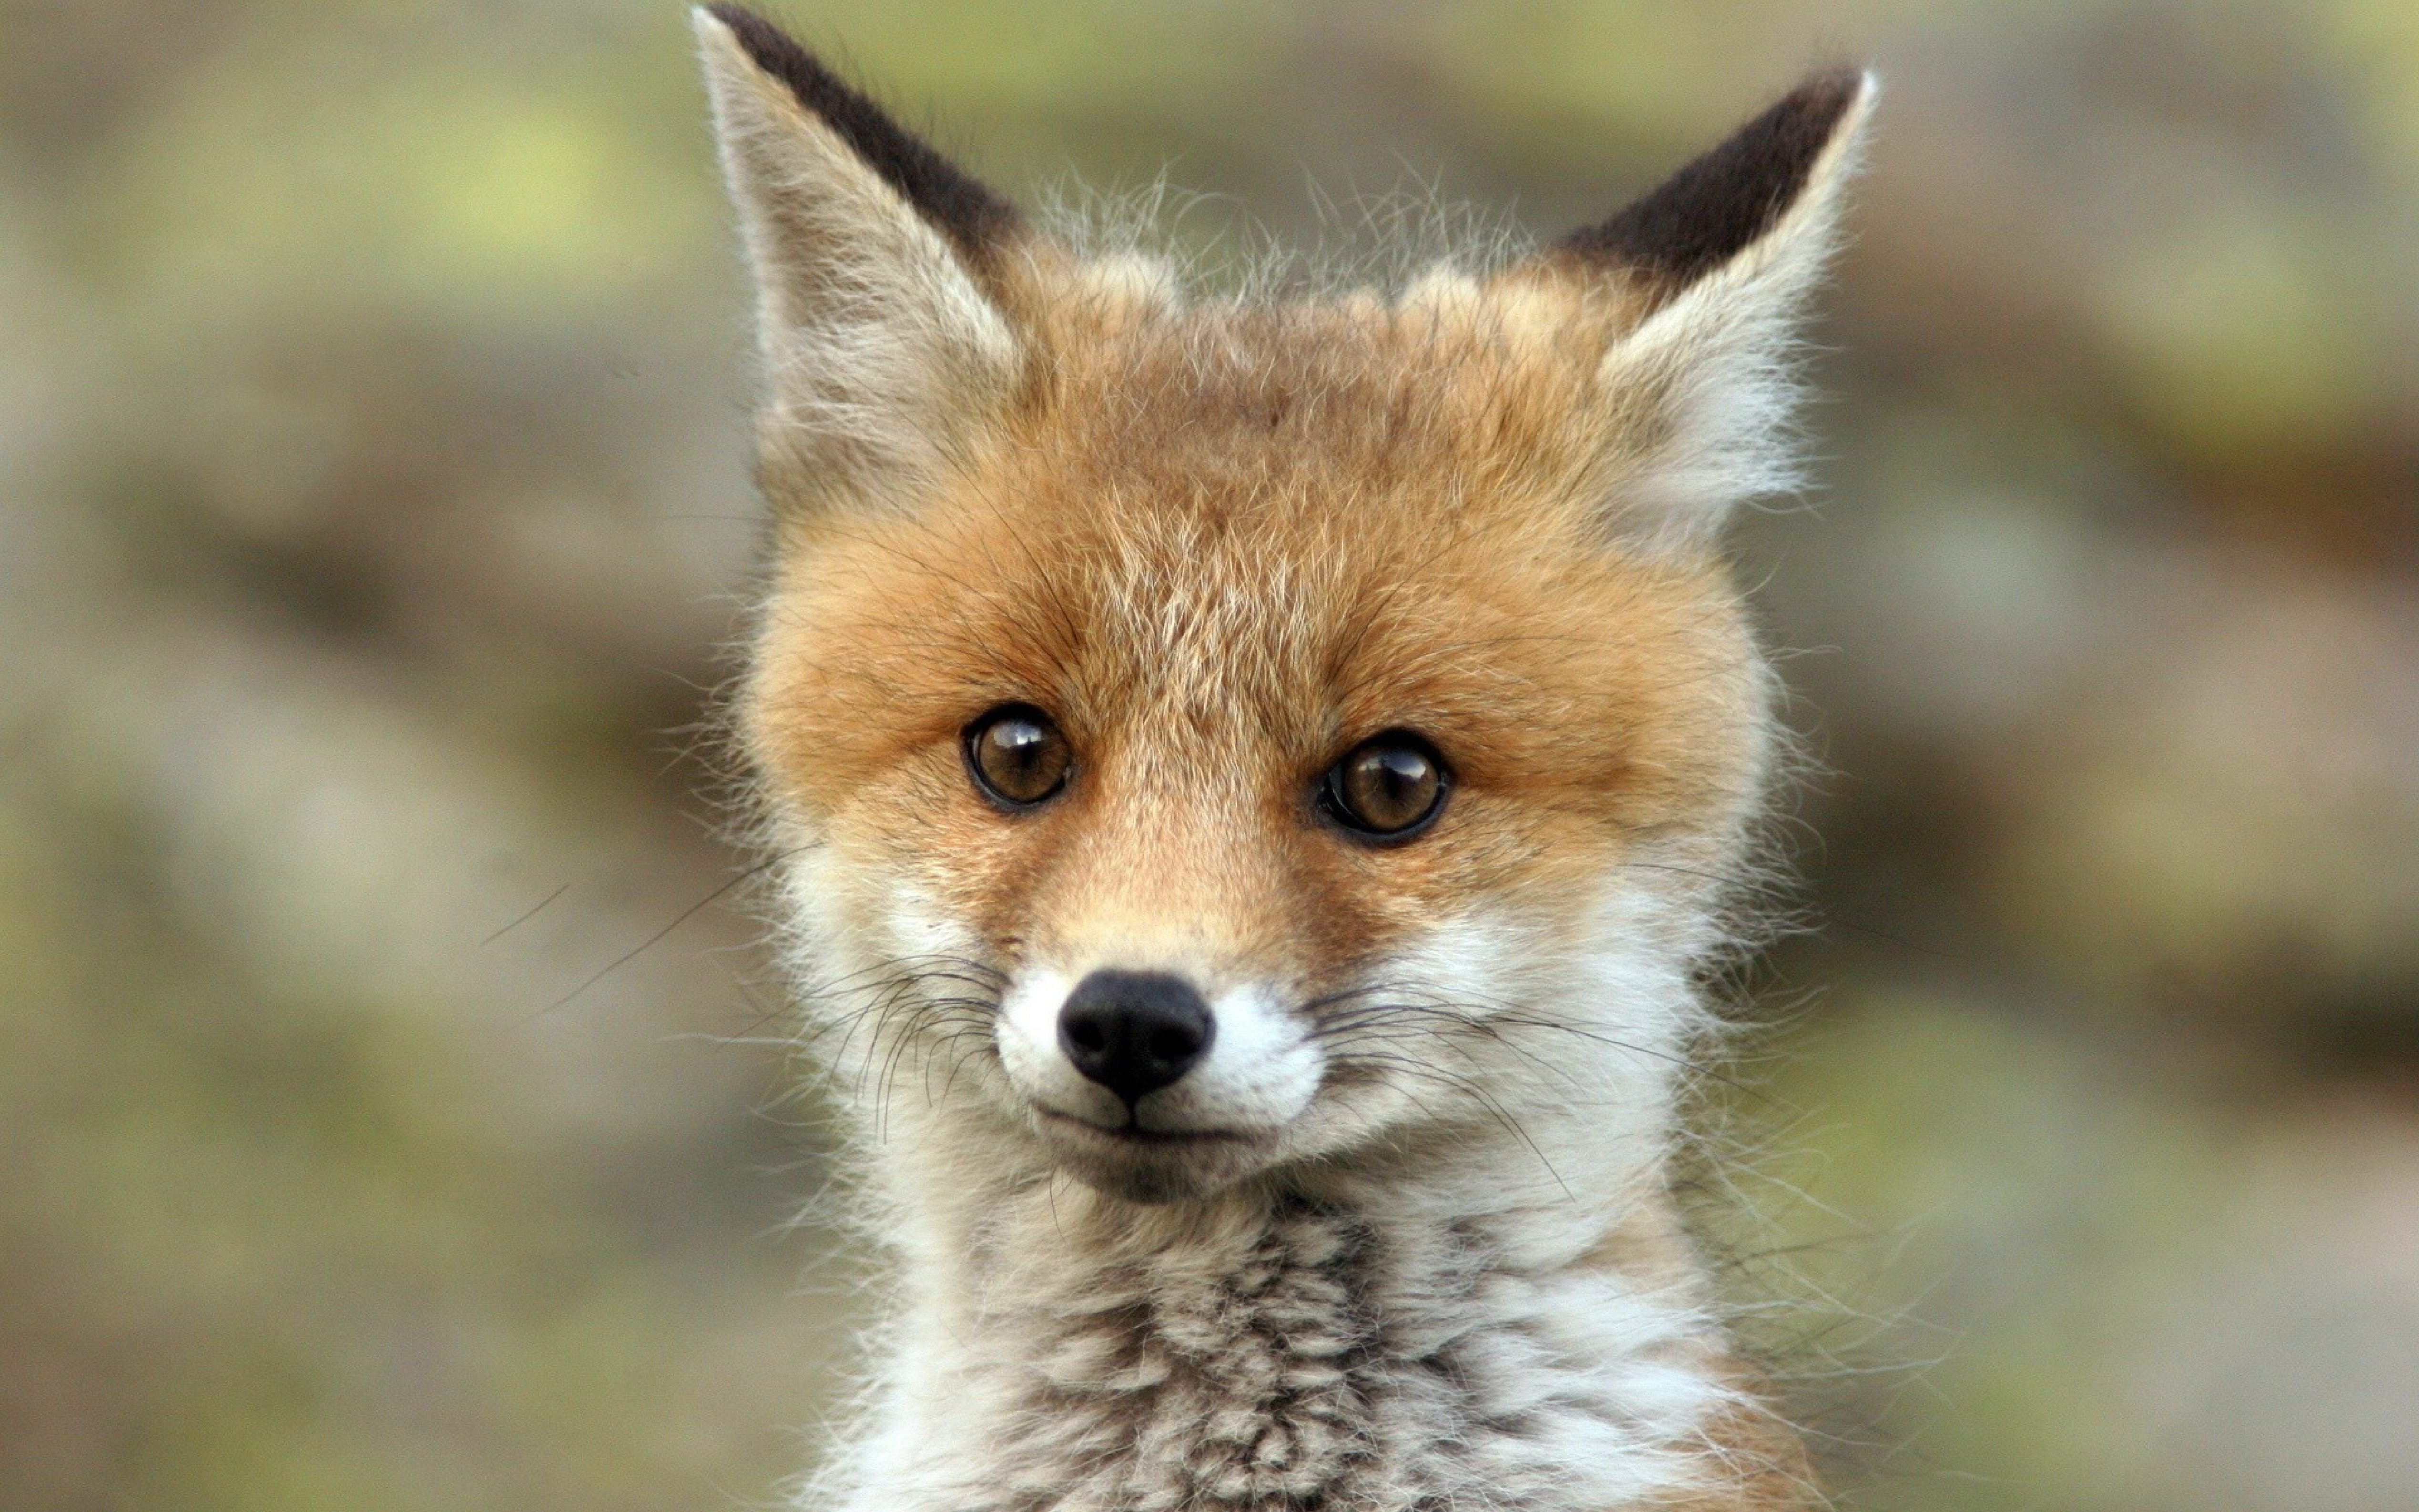 Cute Baby Fox Wallpaper Images Pictures   Becuo 5075x3172